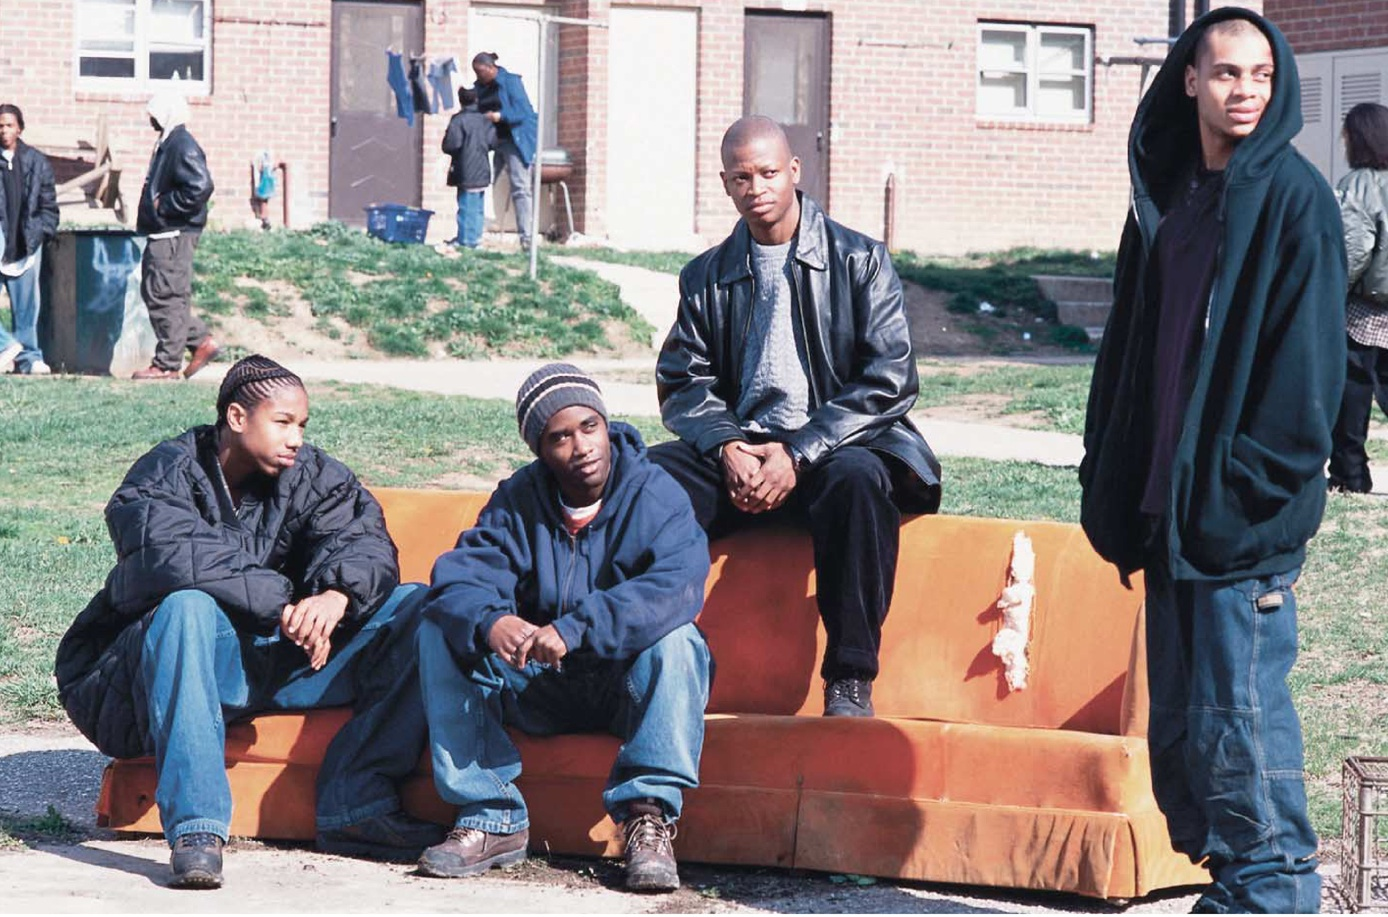 the wire season crew Ranking: Every Season of The Wire from Worst to Best